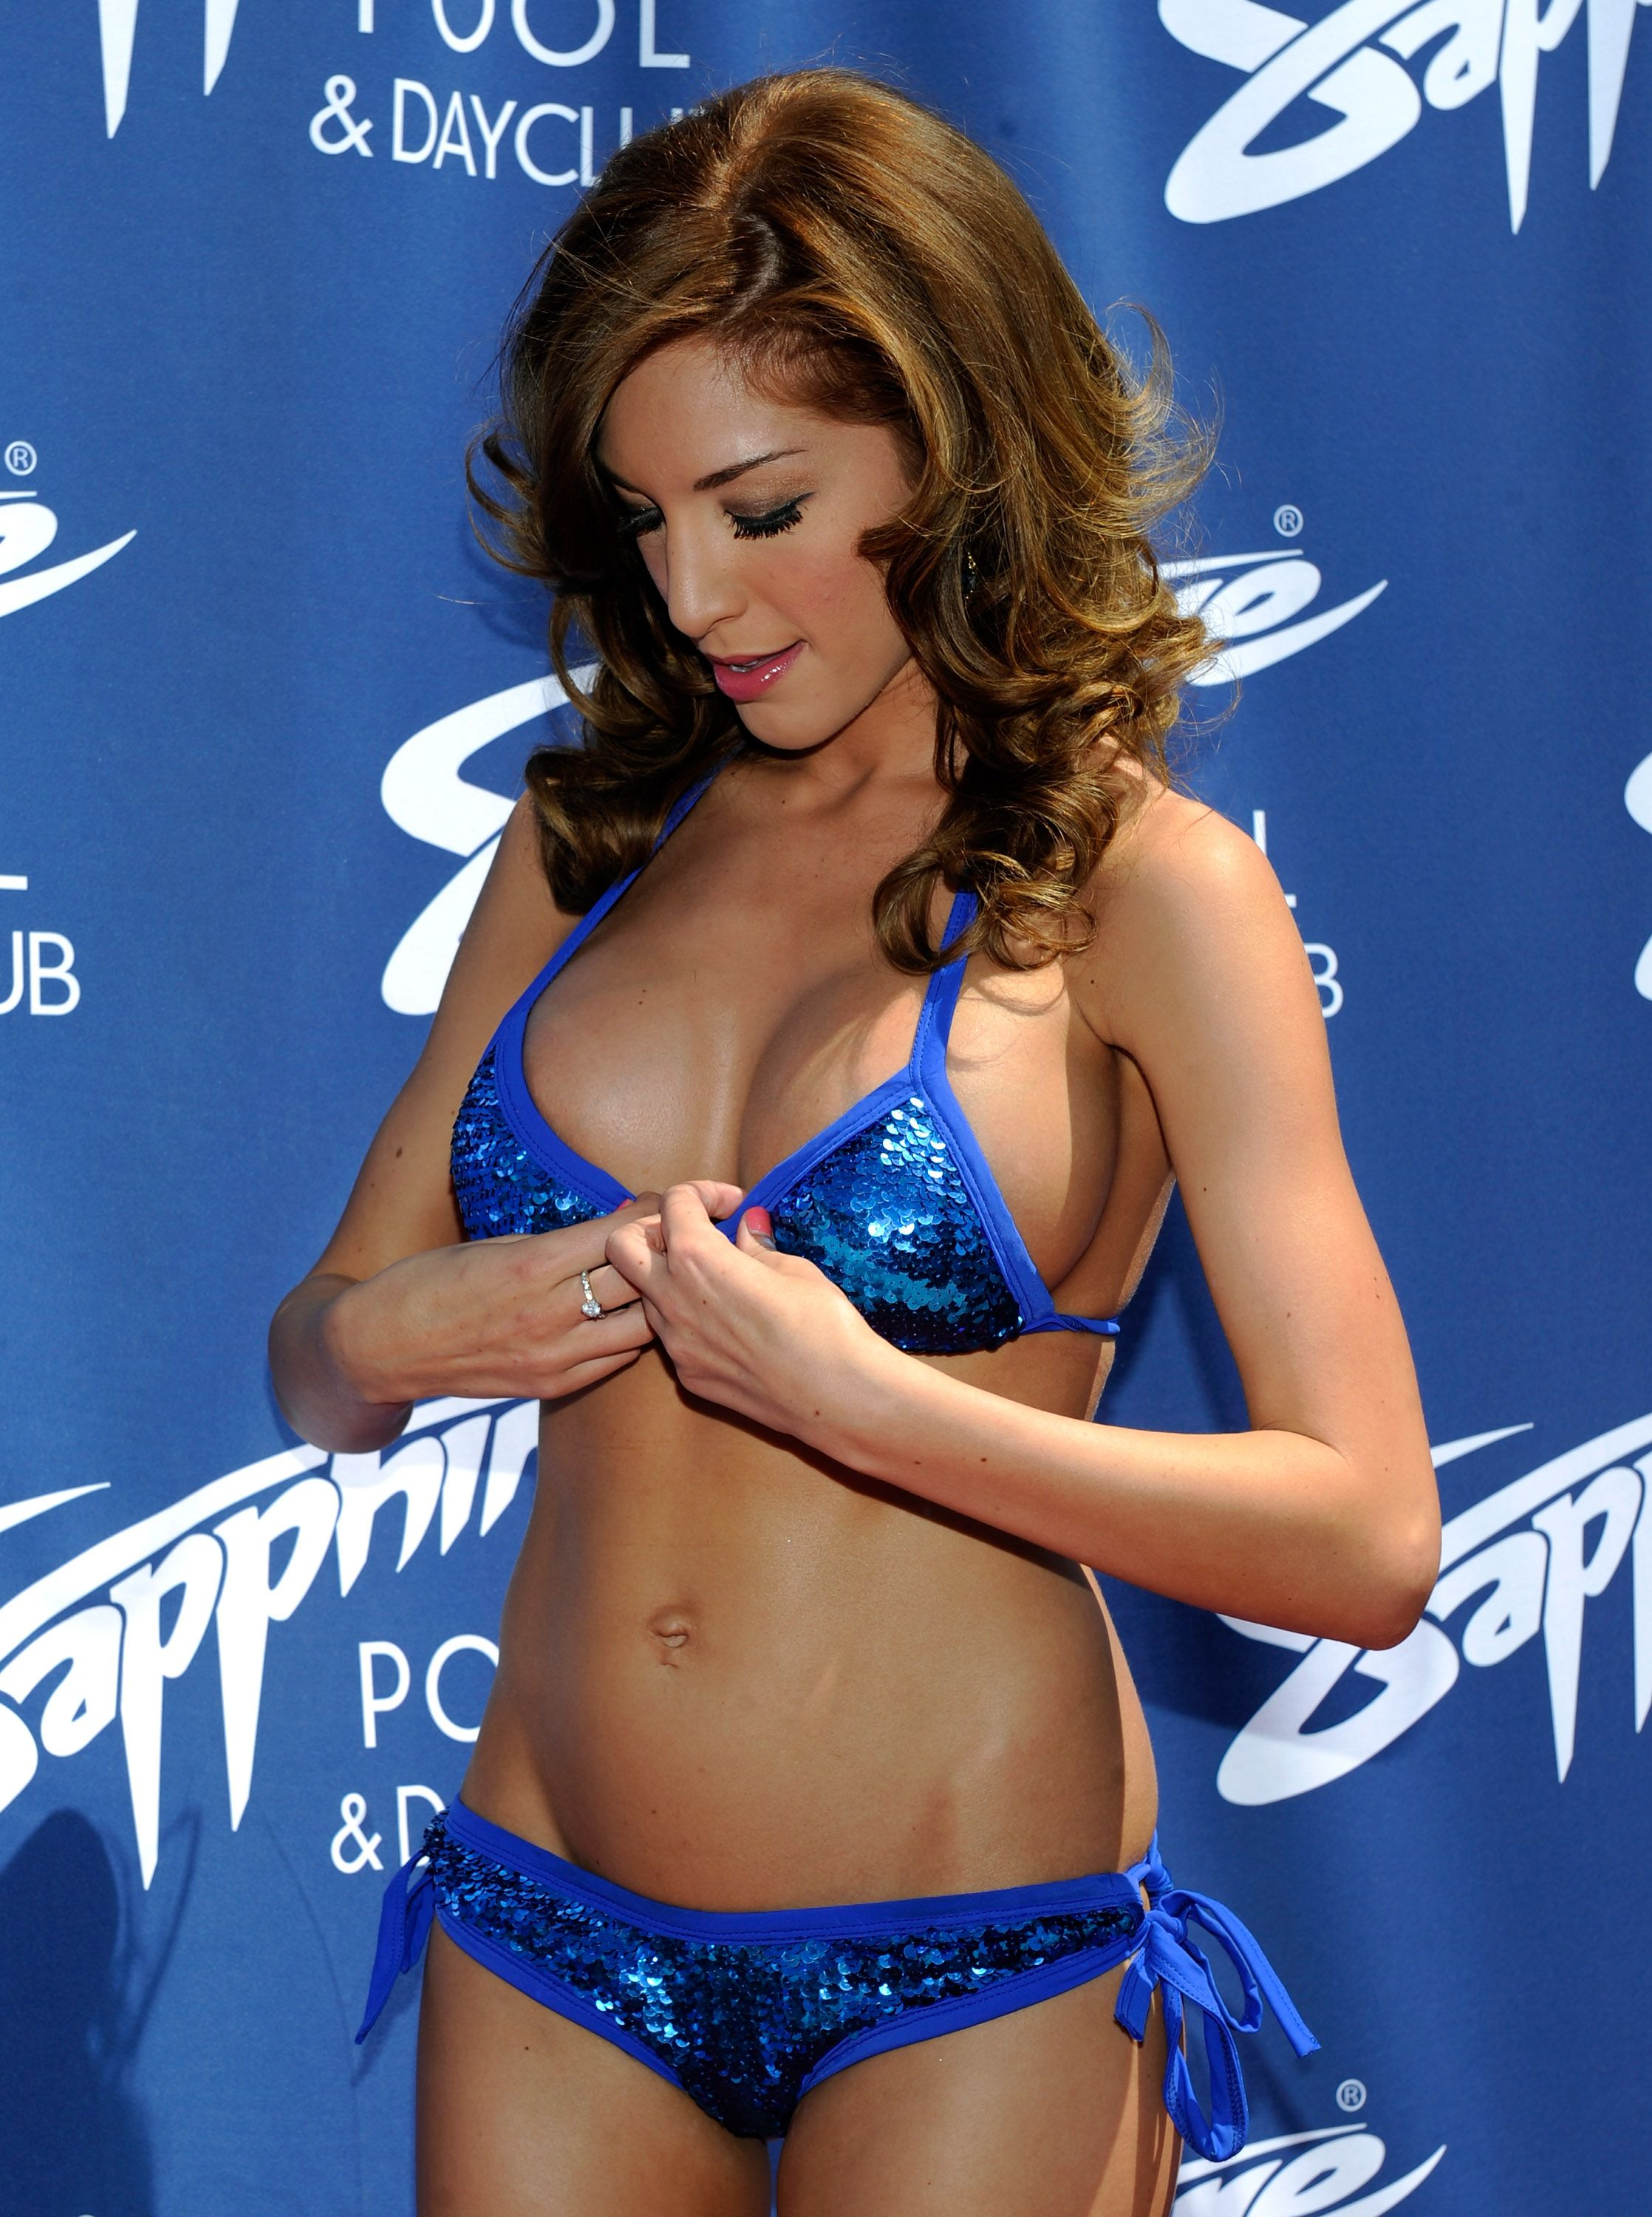 God los vegas bikini contest throat sluts @Anonymous: